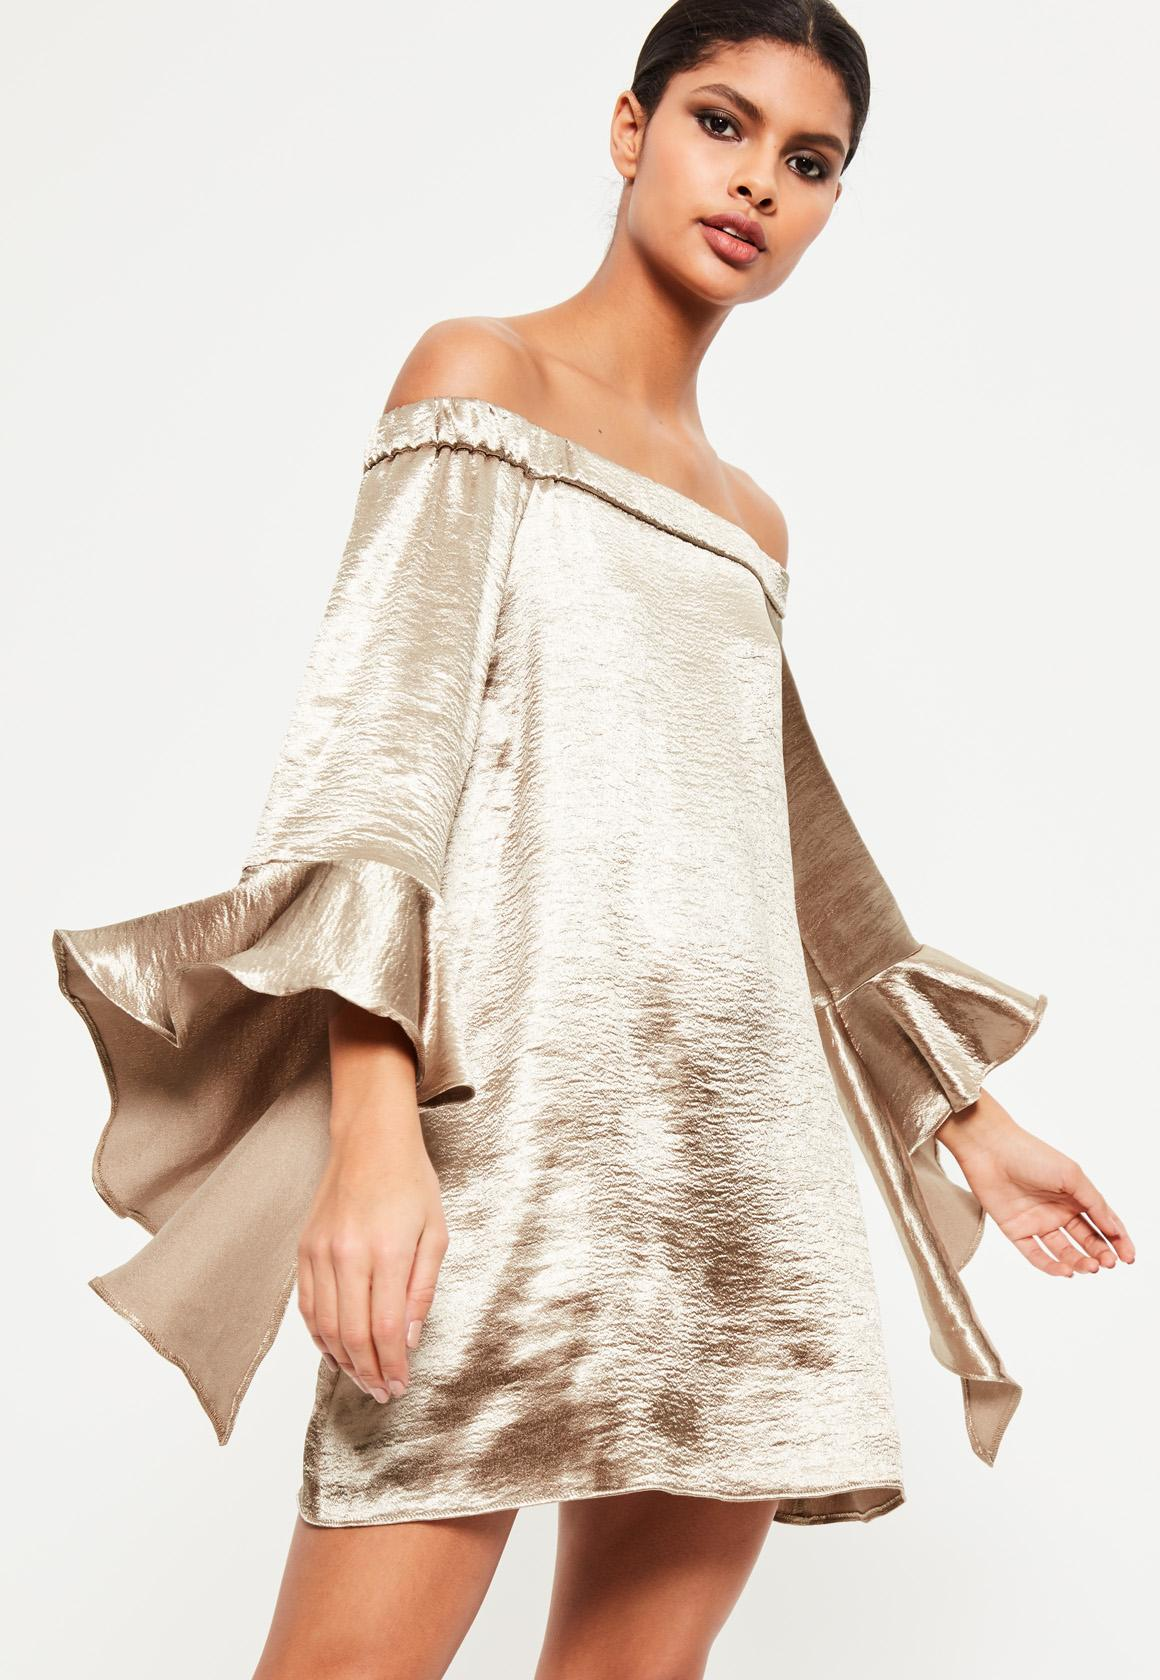 New Year's Eve Dresses That Are Actually Cool | Sidewalk ...